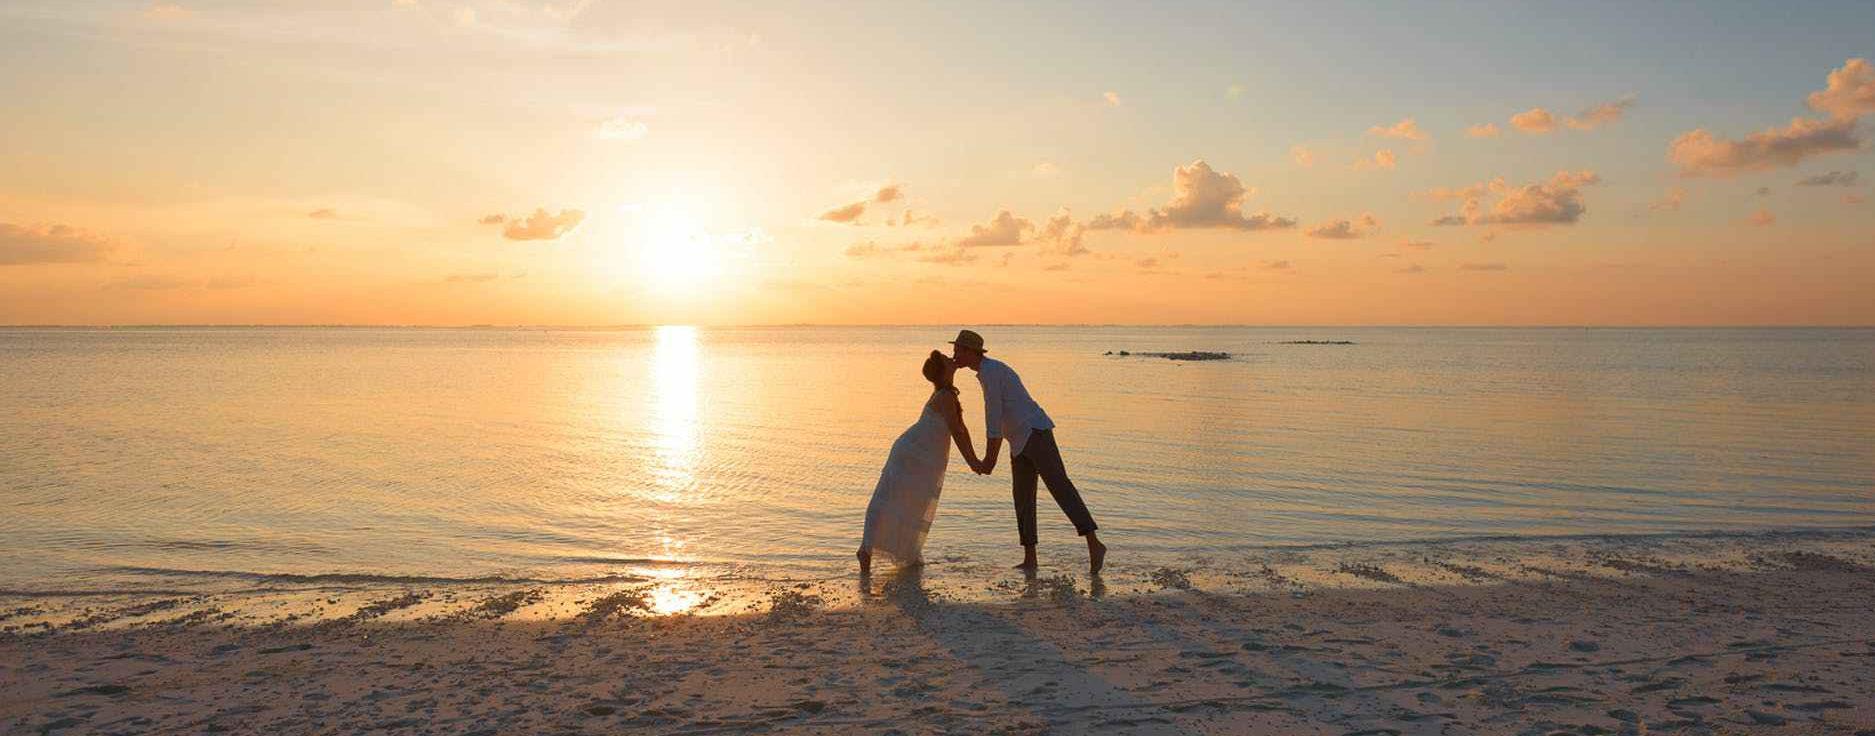 A couple, kissing on a sandy beach at sunset (sunrise?)